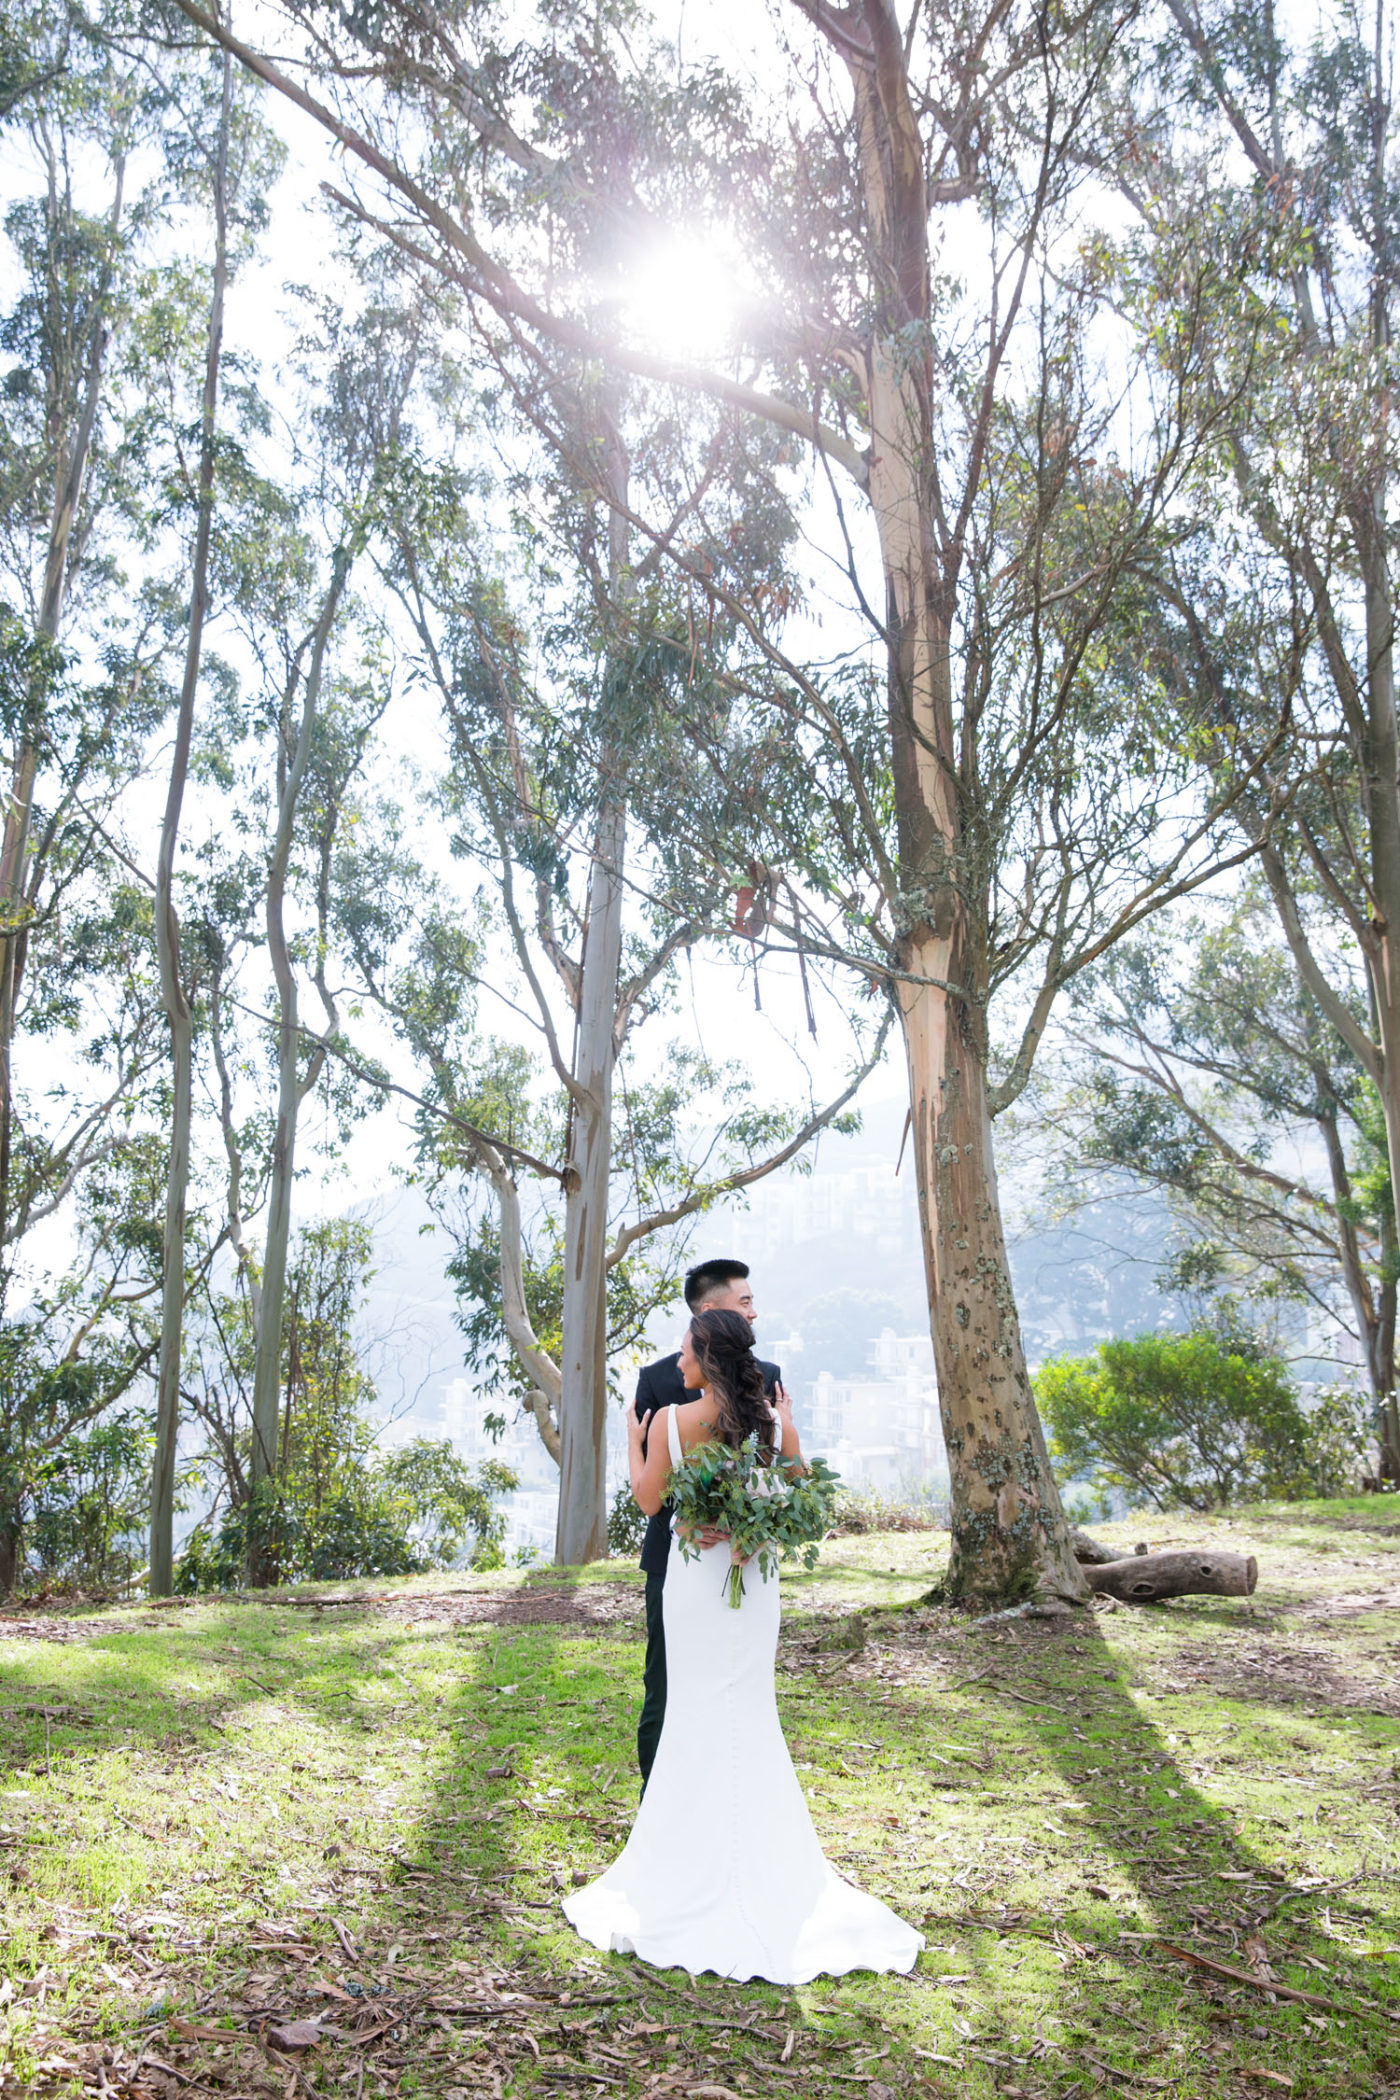 bride and groom embrace under the trees near the ocean